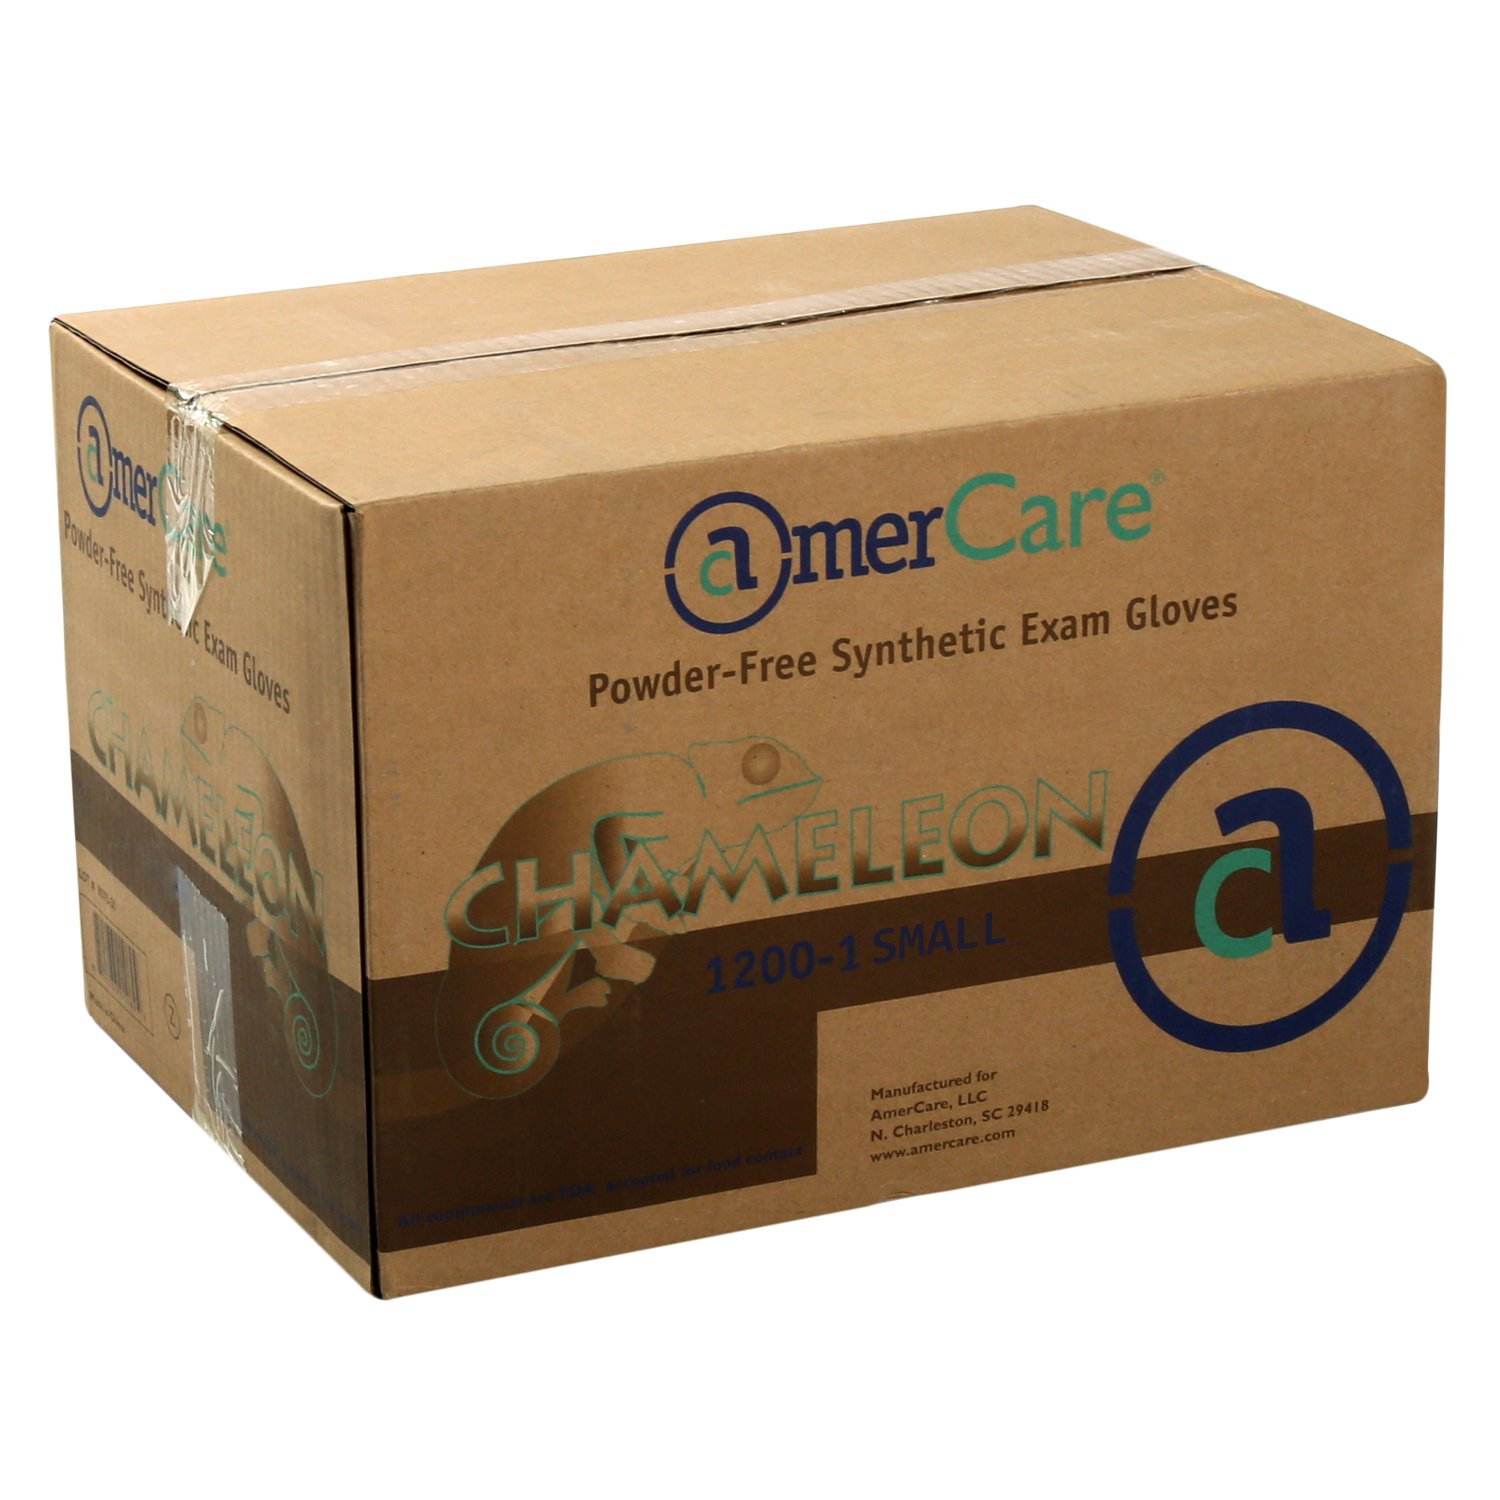 AmerCare Chameleon Powder Free, Synthetic Gloves, Small, Case of 1000 by AmerCare (Image #5)